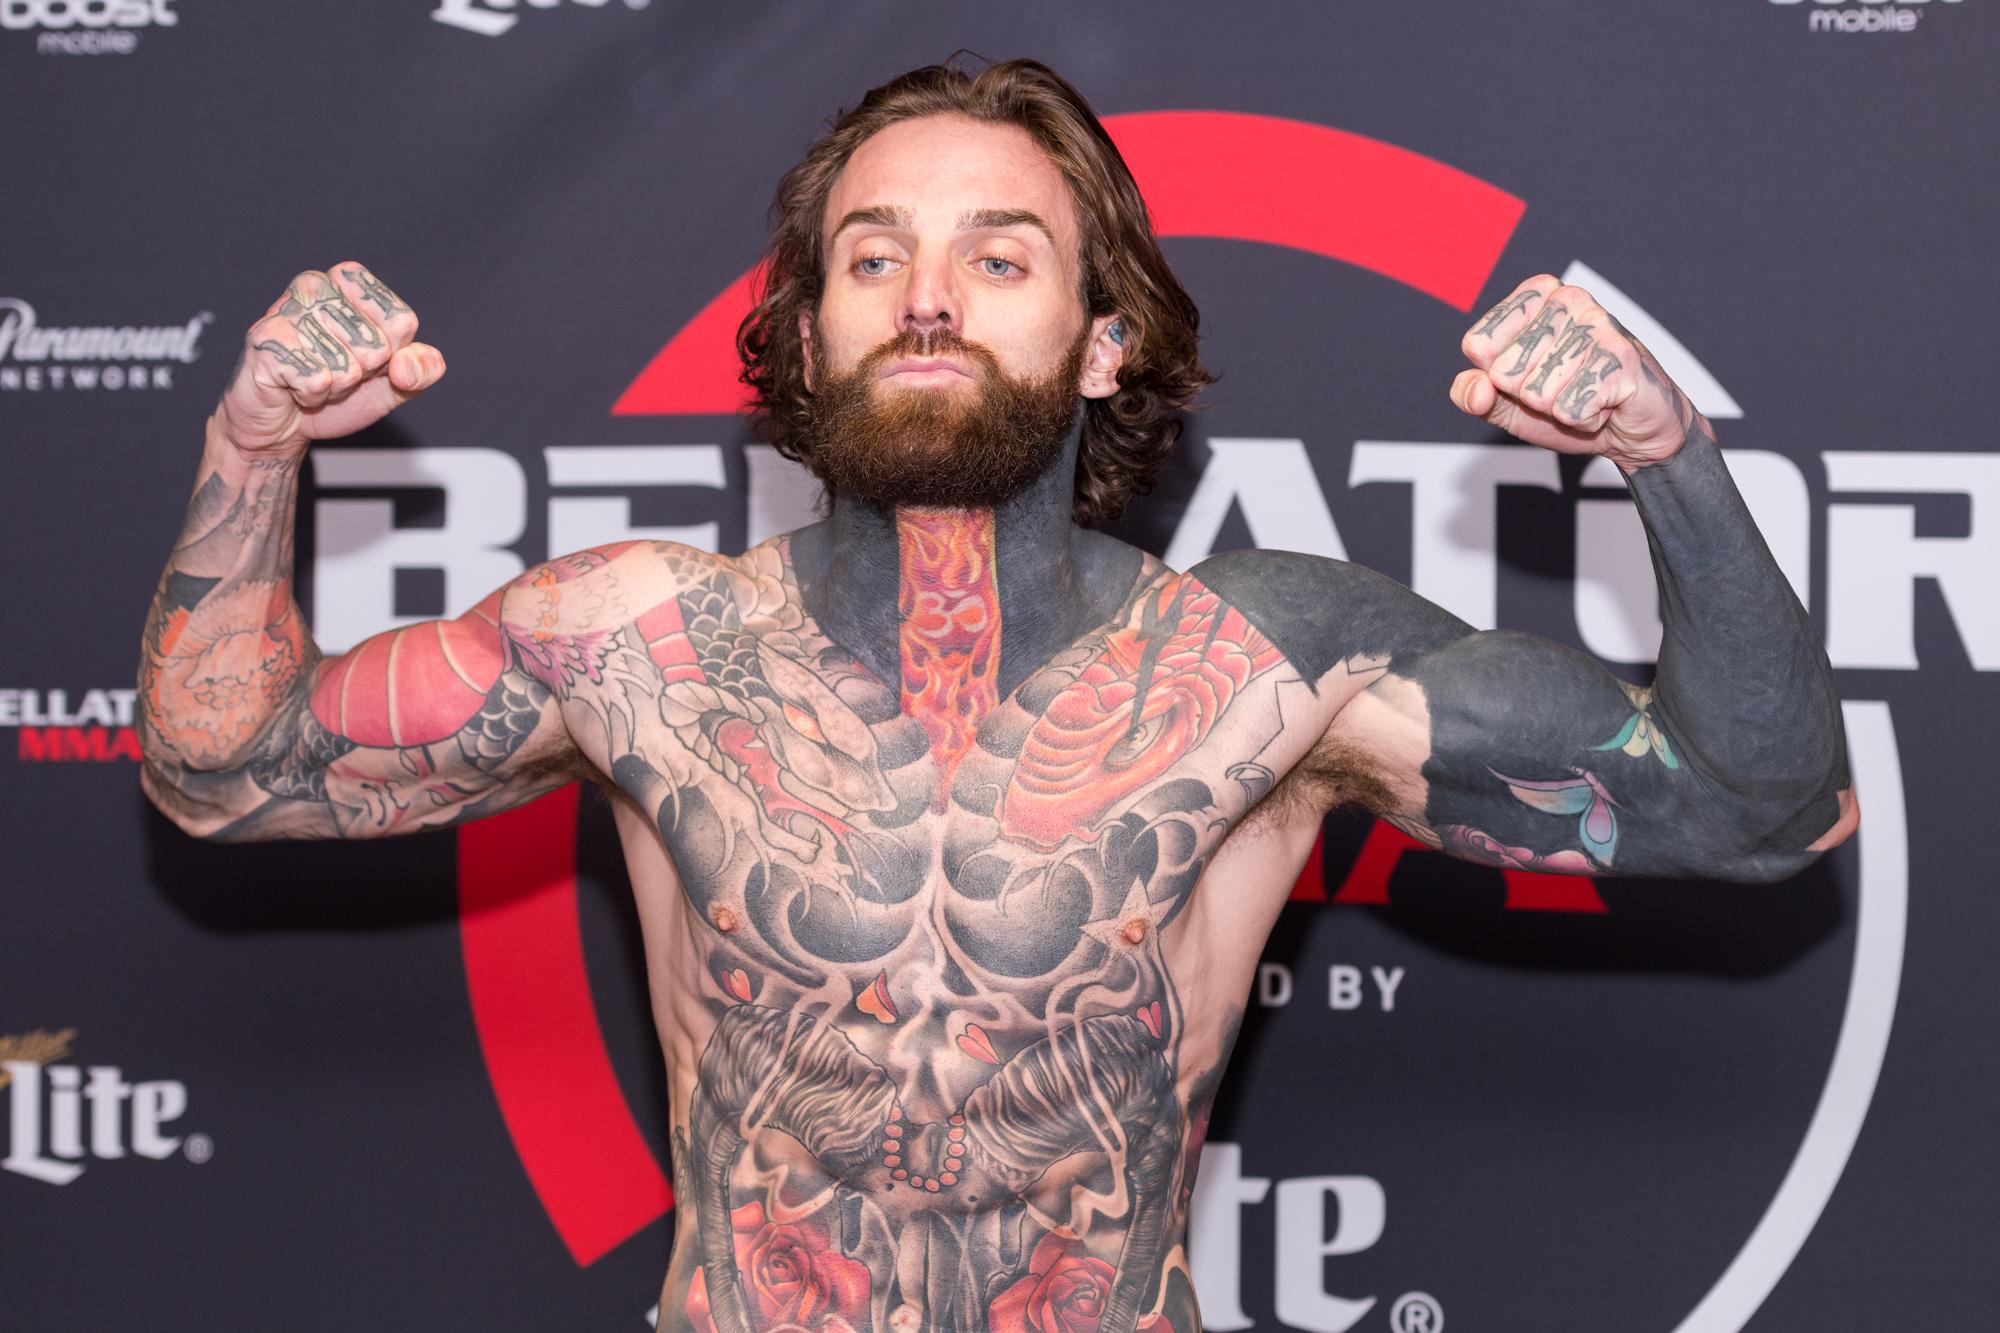 The former Geordie Shore star weighed in ahead of making his Bellator debut on Friday